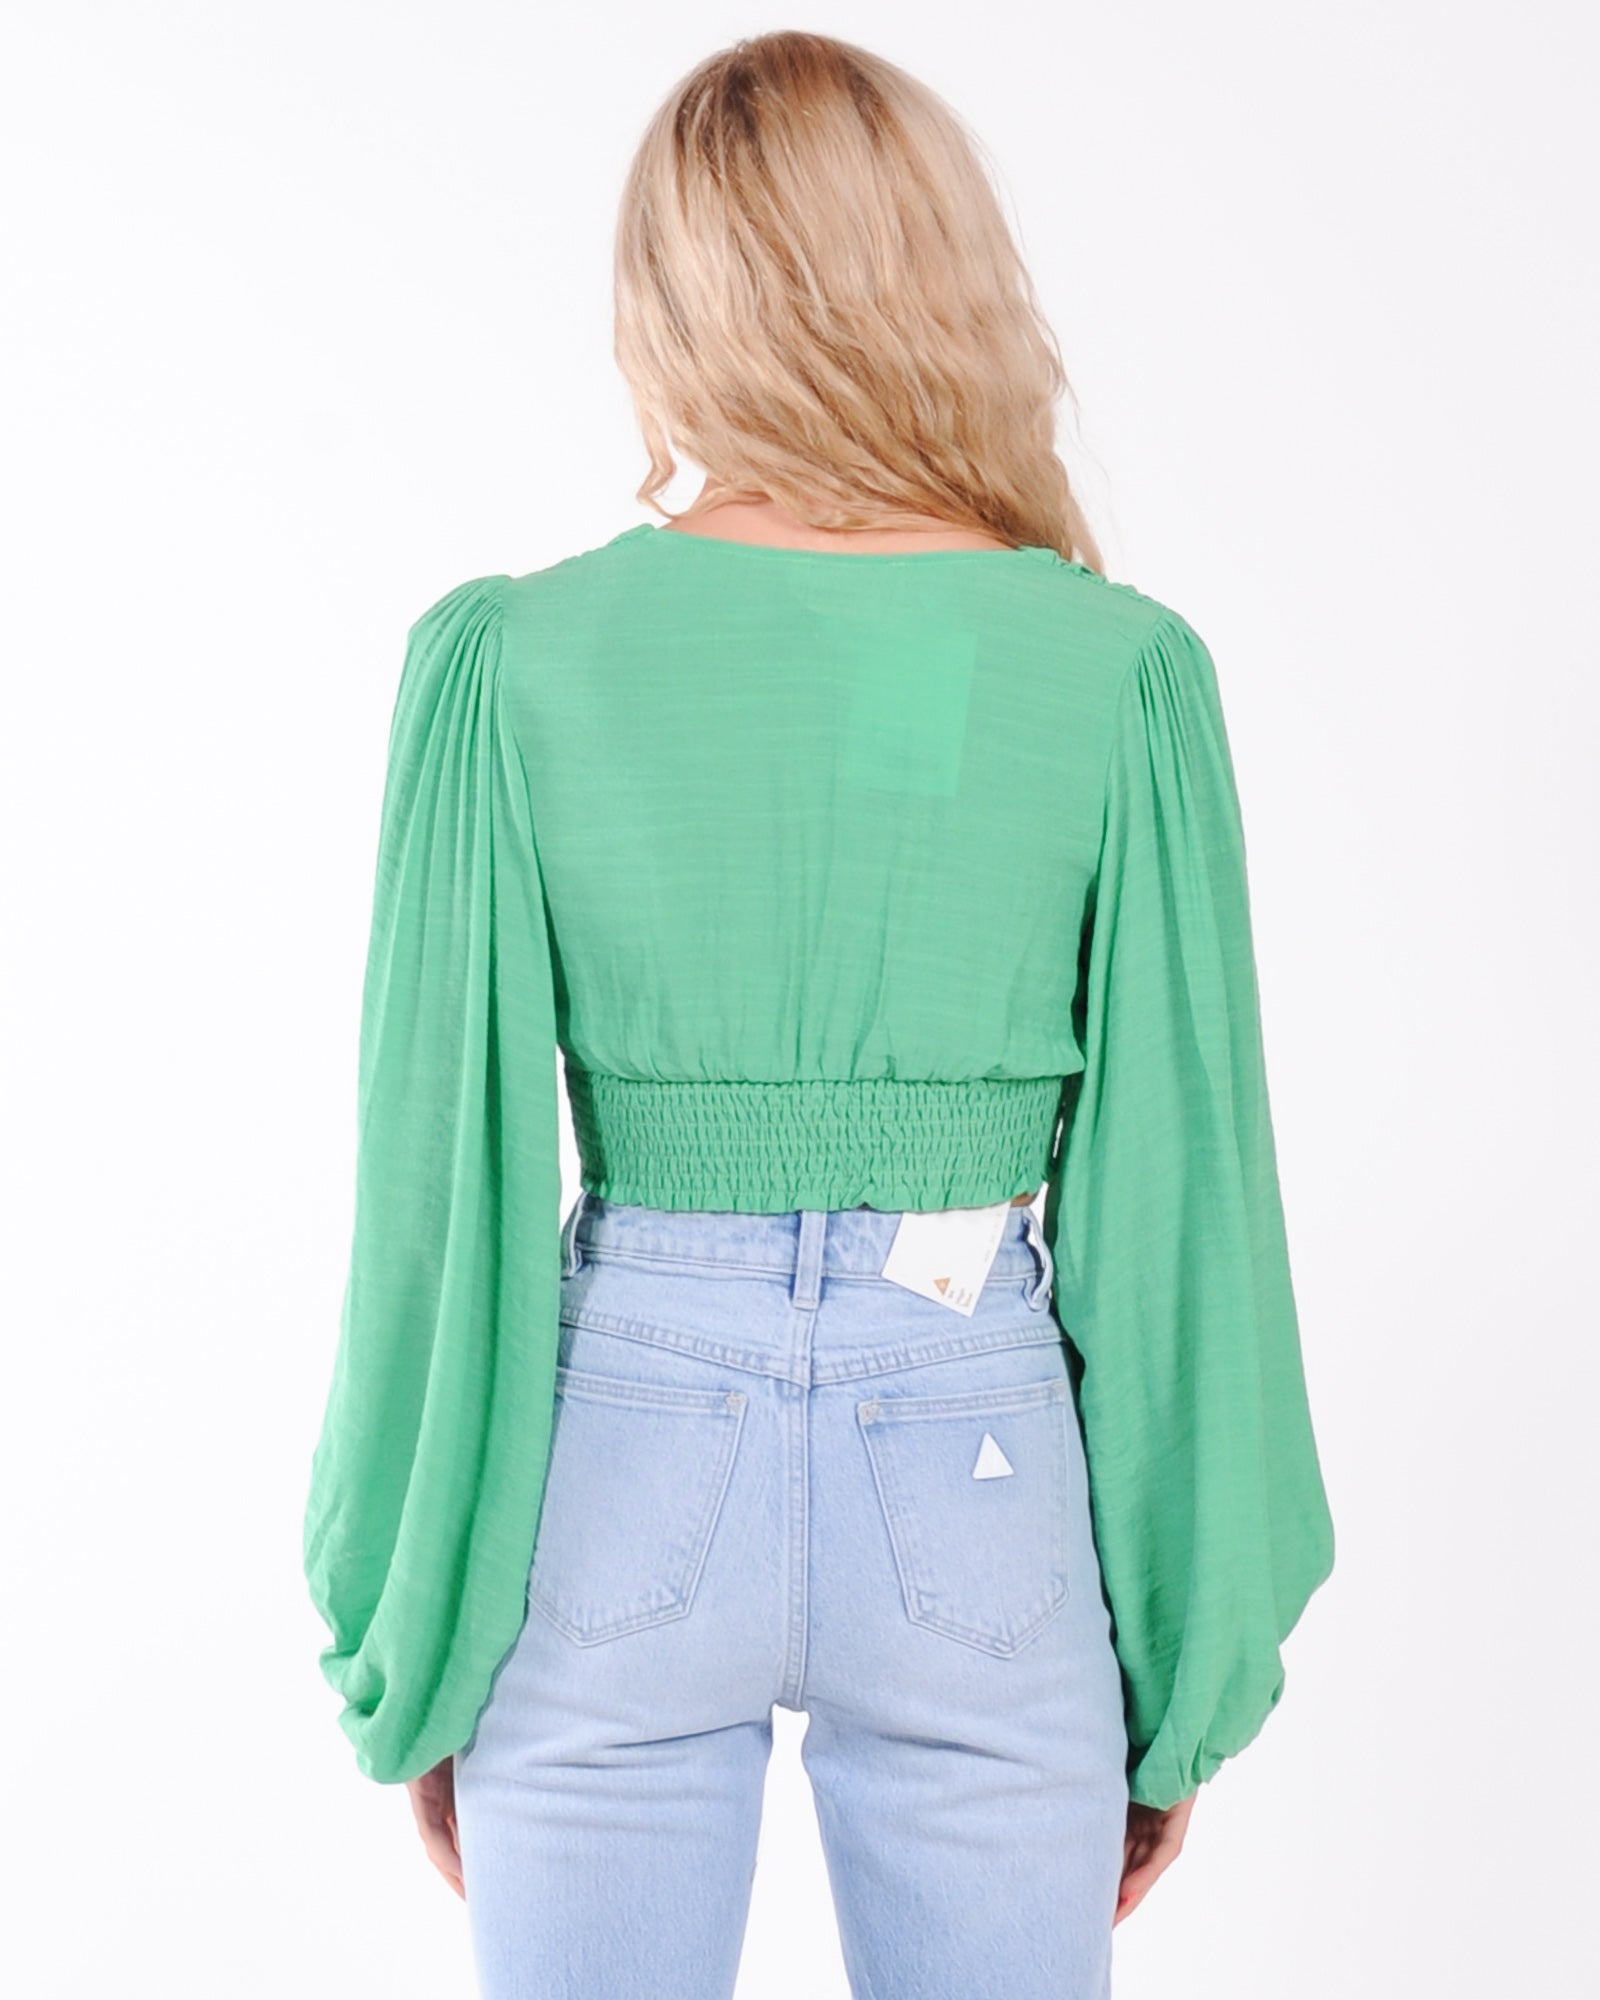 Sienna Shirt - Green